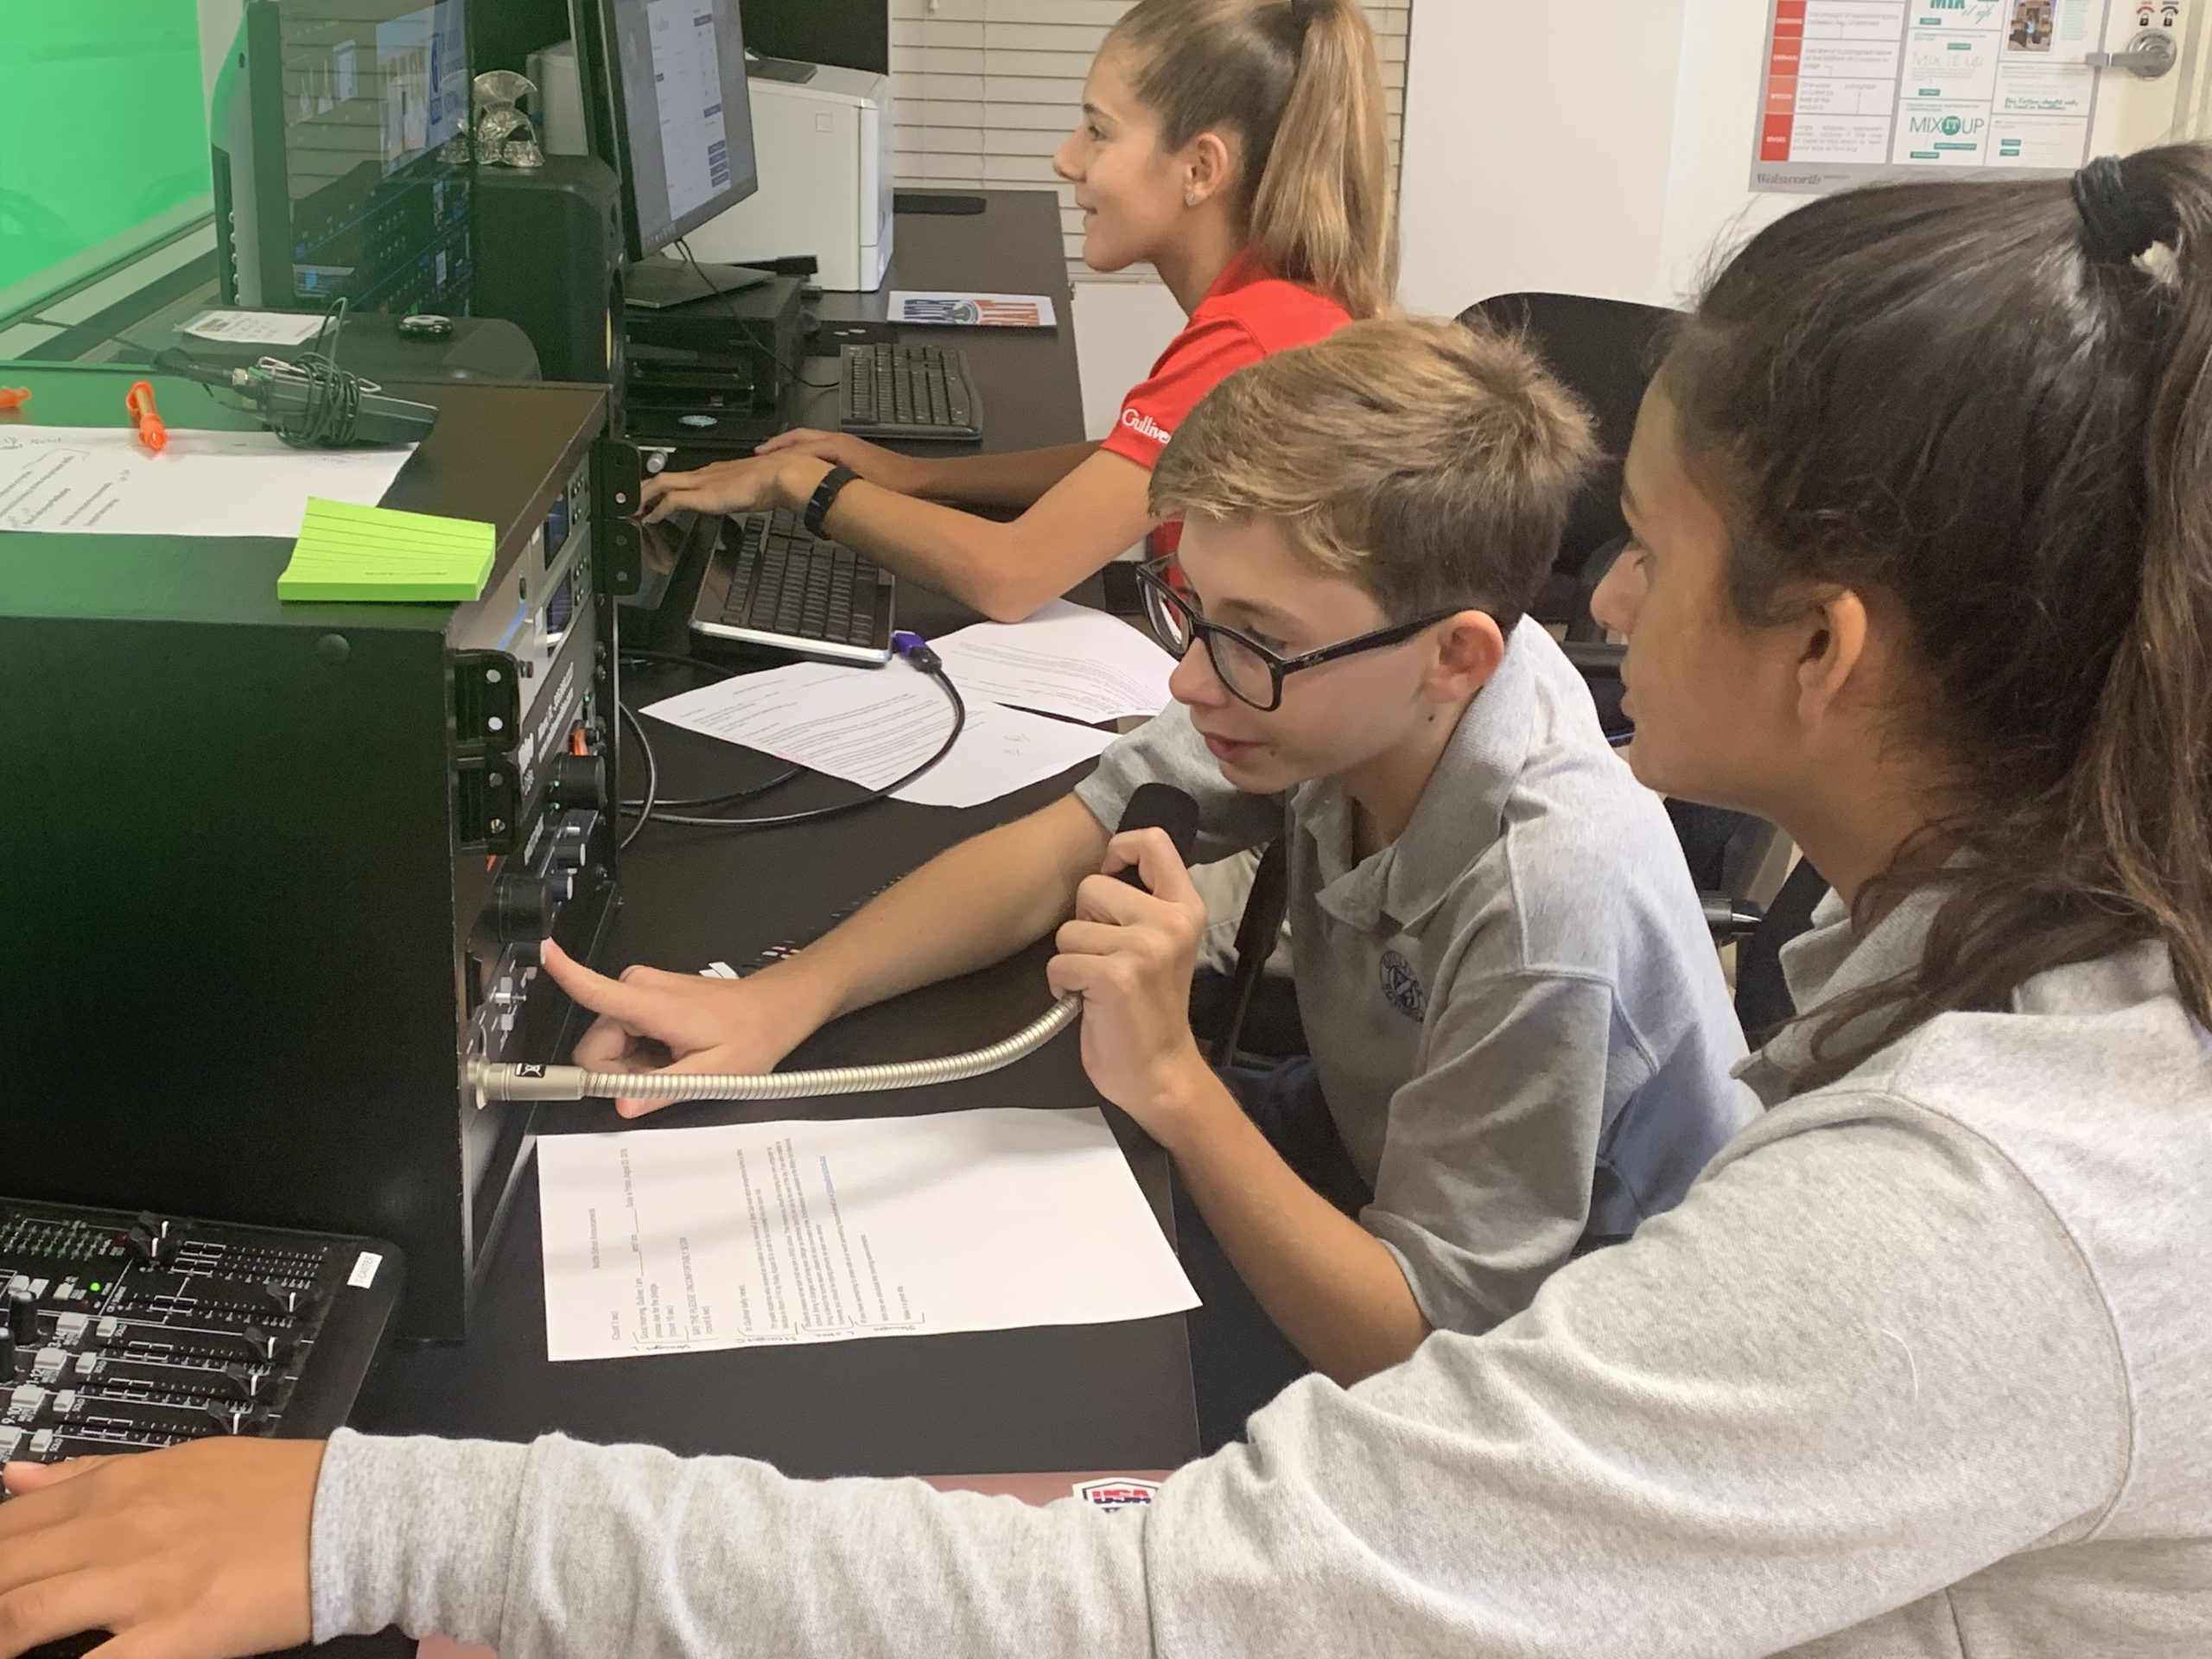 Middle school students working on RSN